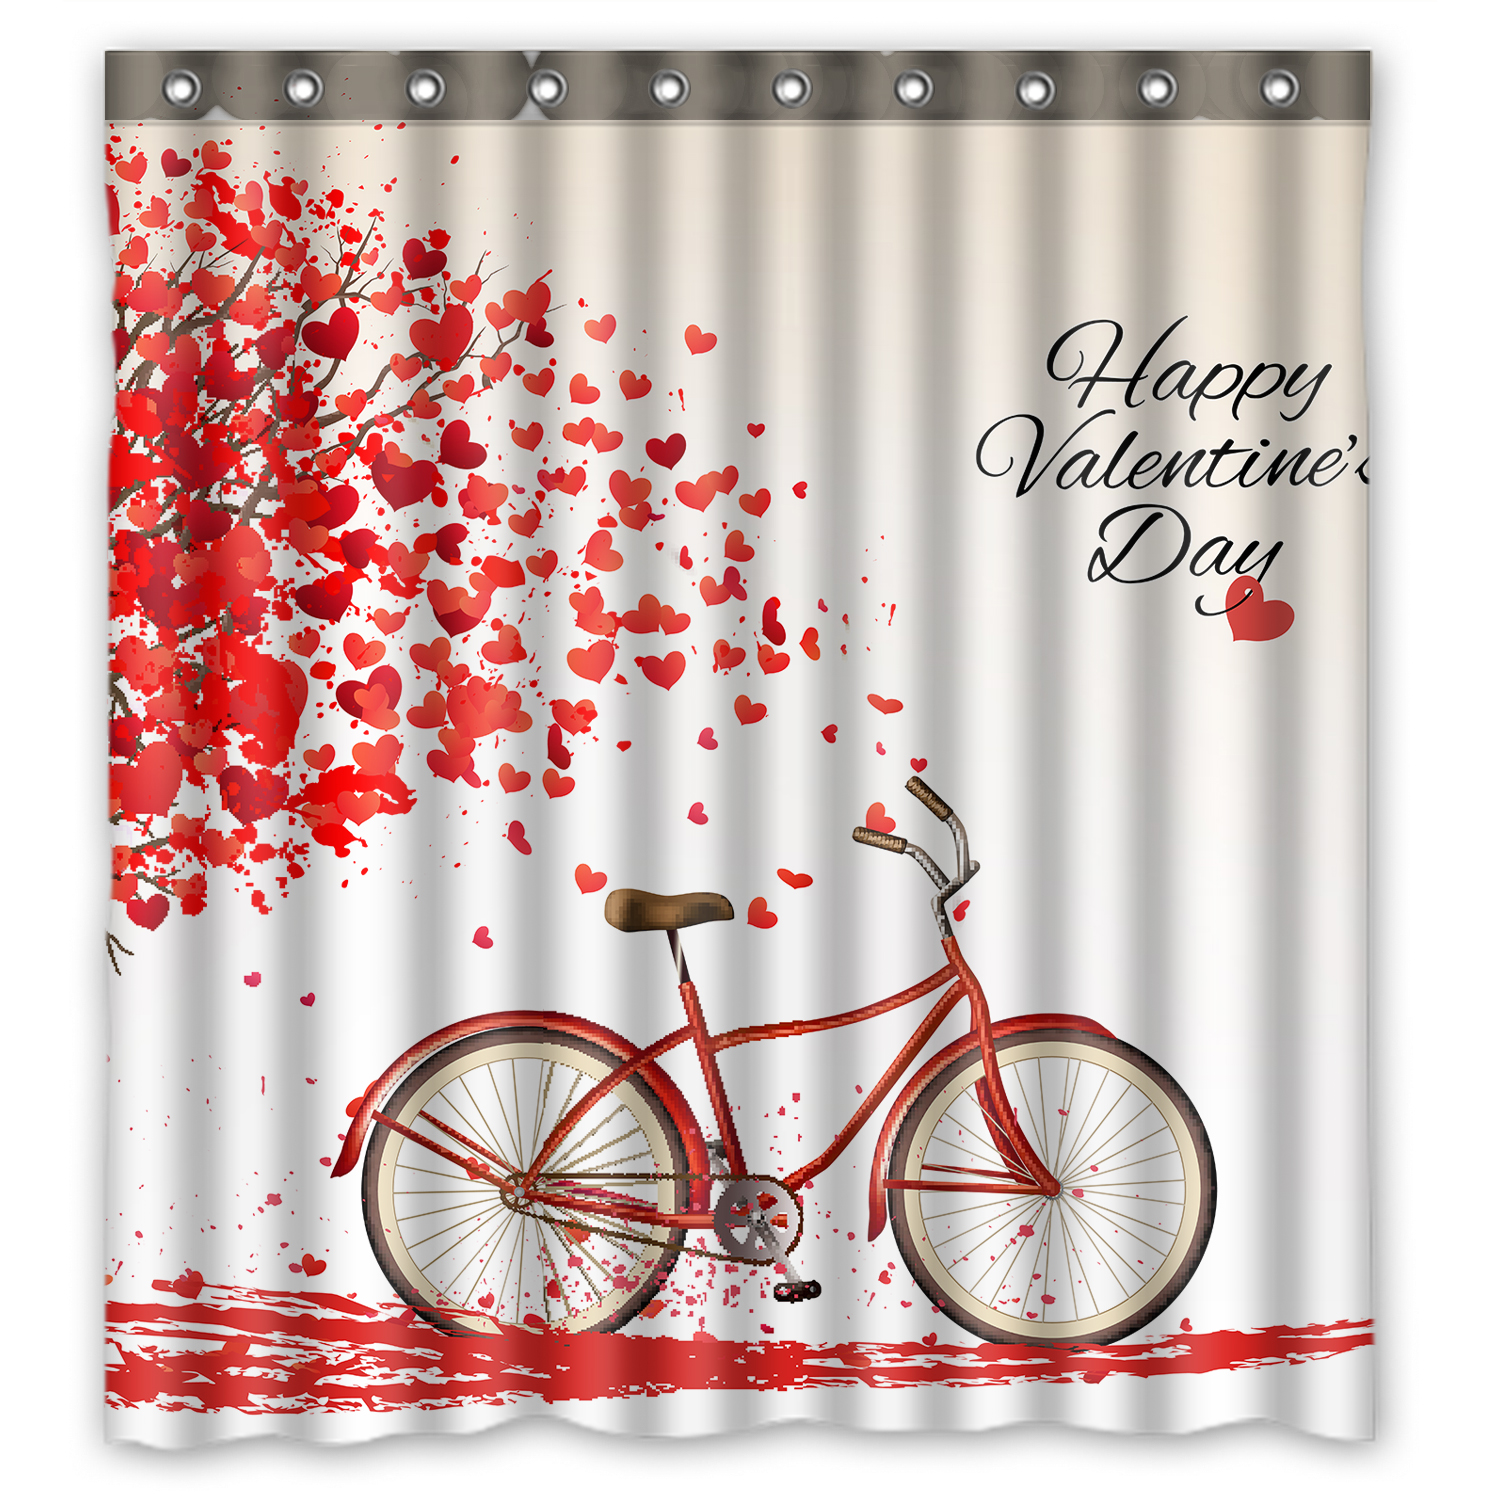 YKCG Tree Of Love Heart Valentines Day Bike Shower Curtain Waterproof Fabric Bathroom 66x72 Inches